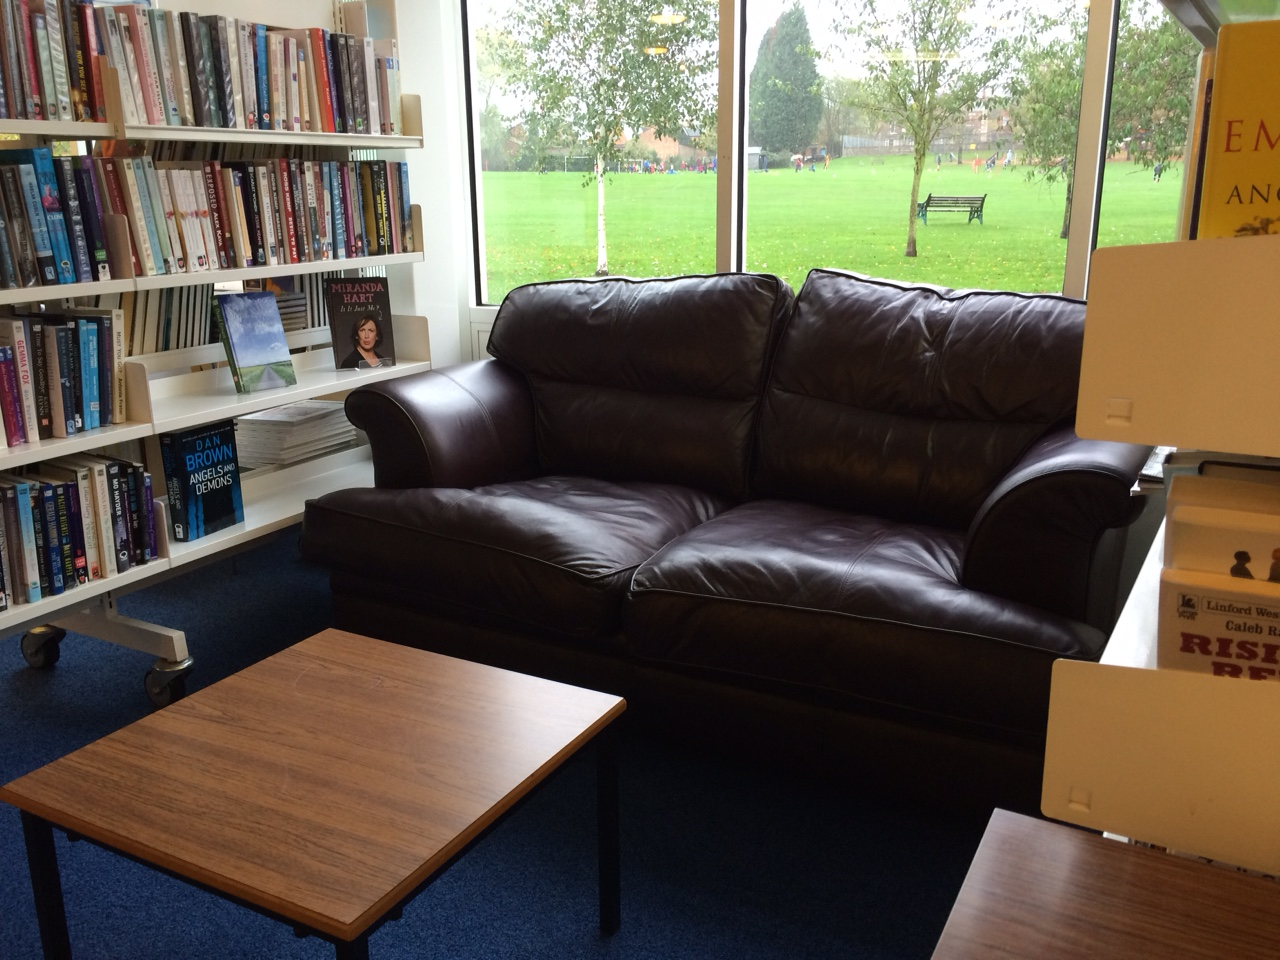 We Now Have A Brilliant Donated Sofa And Comfy Reading Area At Anstey  Community Library.